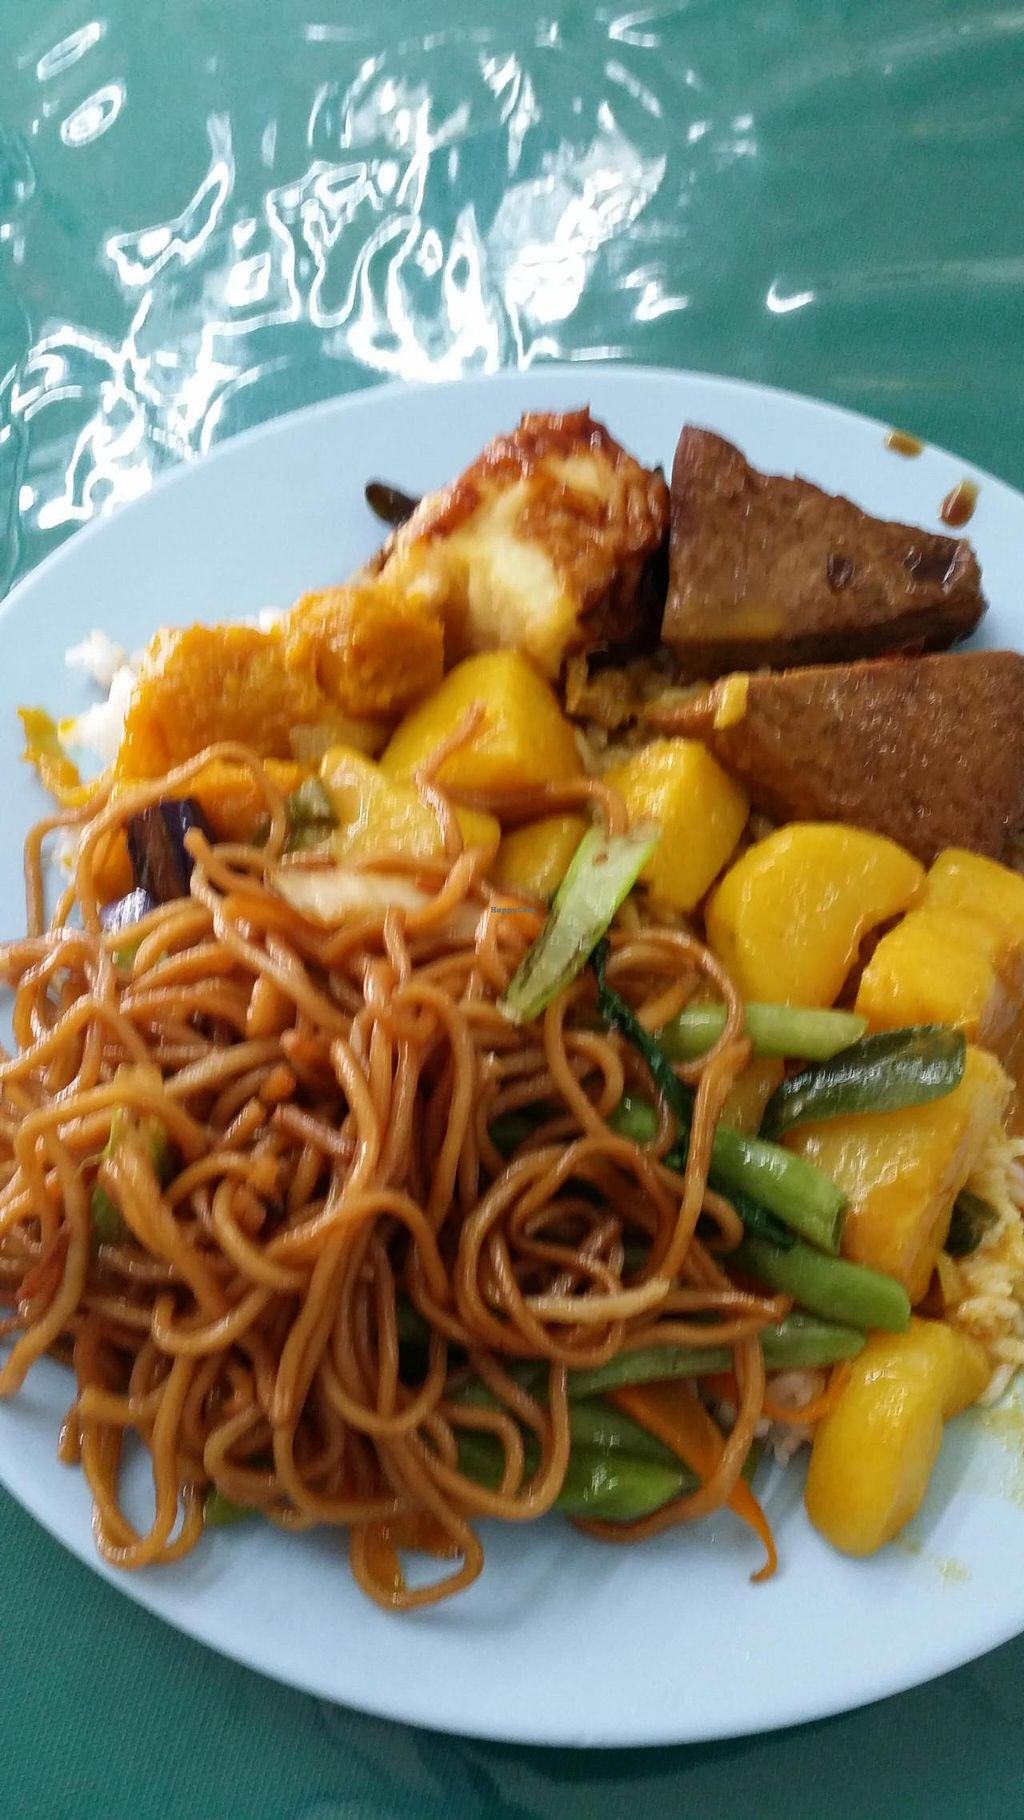 """Photo of Xin An Vegetarian Cafe  by <a href=""""/members/profile/walter007"""">walter007</a> <br/>Food <br/> July 23, 2014  - <a href='/contact/abuse/image/6079/74766'>Report</a>"""